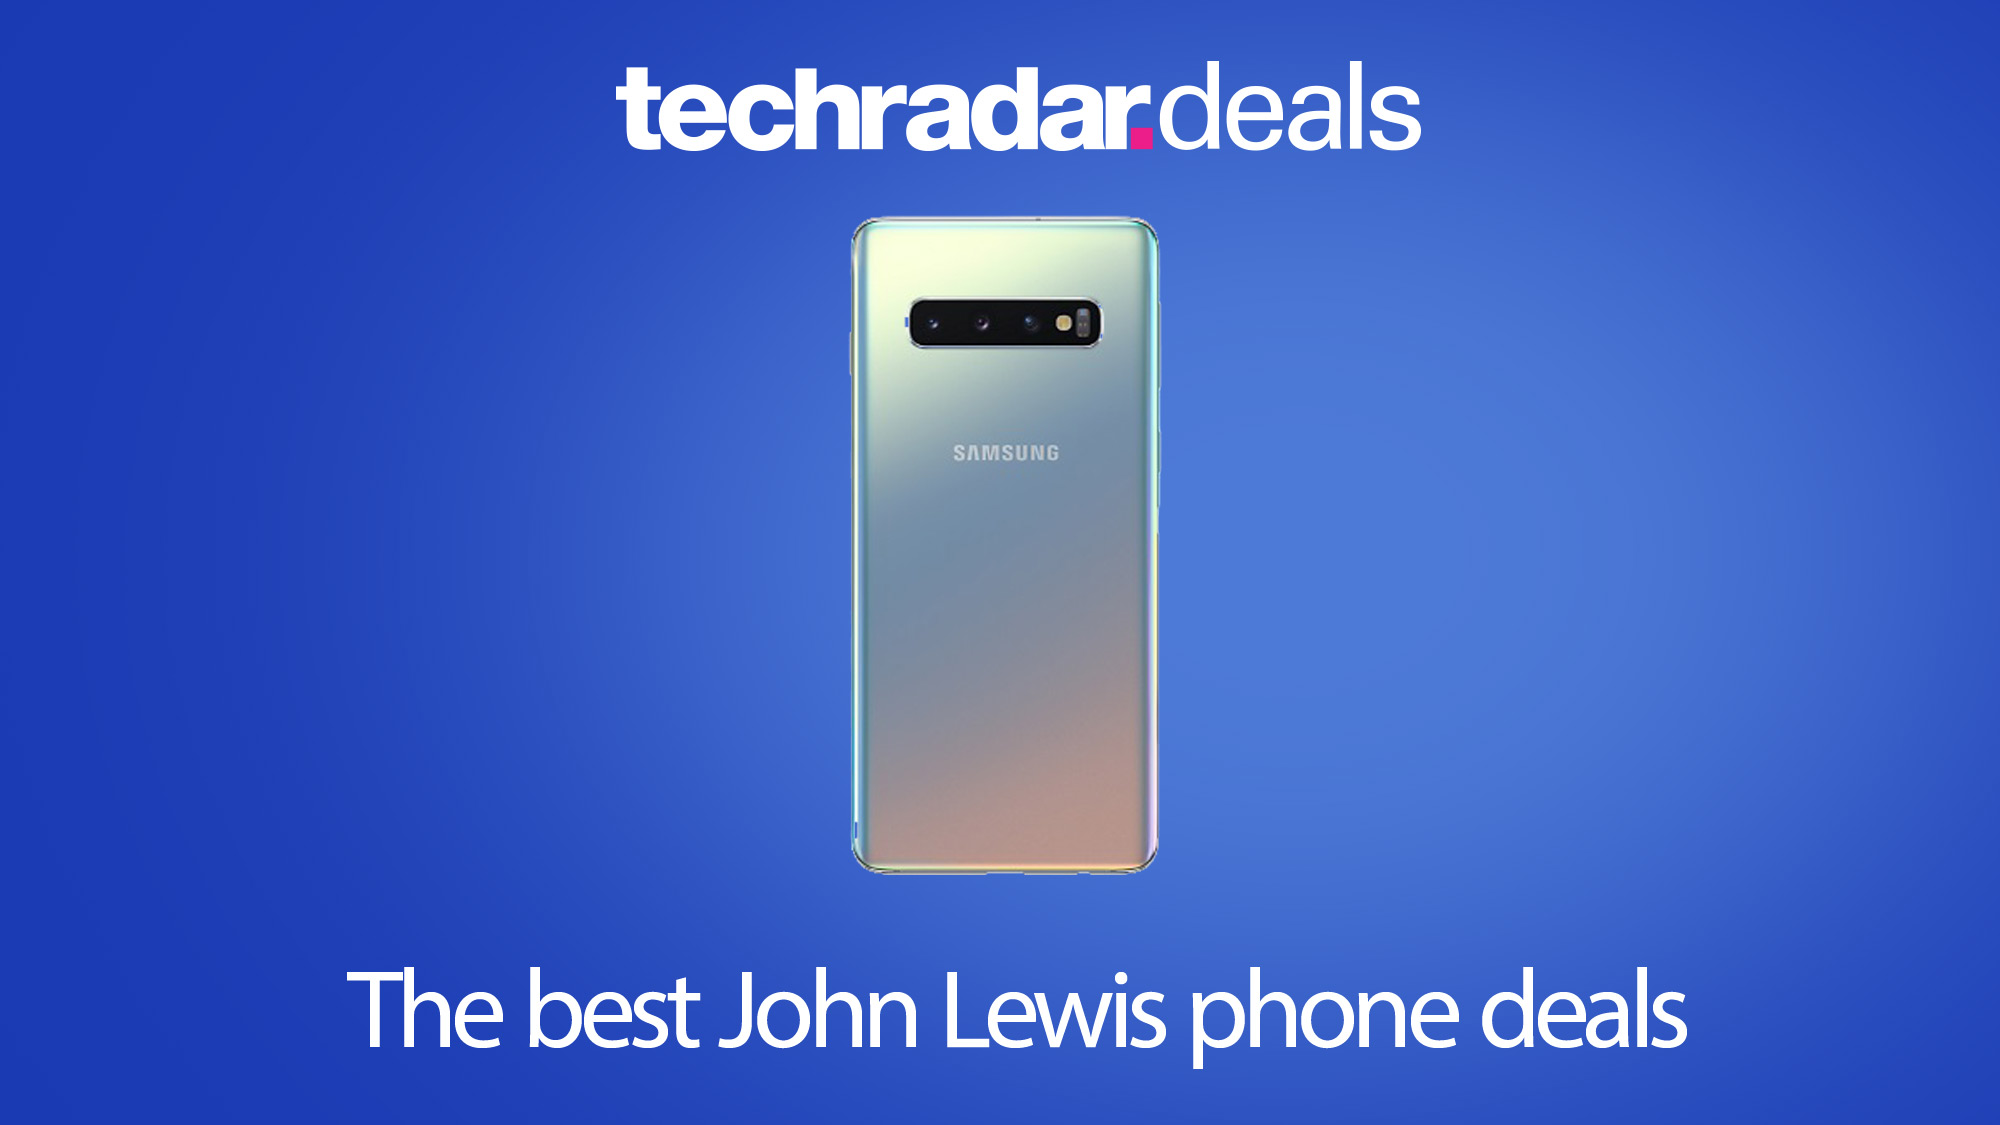 More John Lewis Black Friday Phone Deals Arrive On Google Huawei And More Phones Techradar